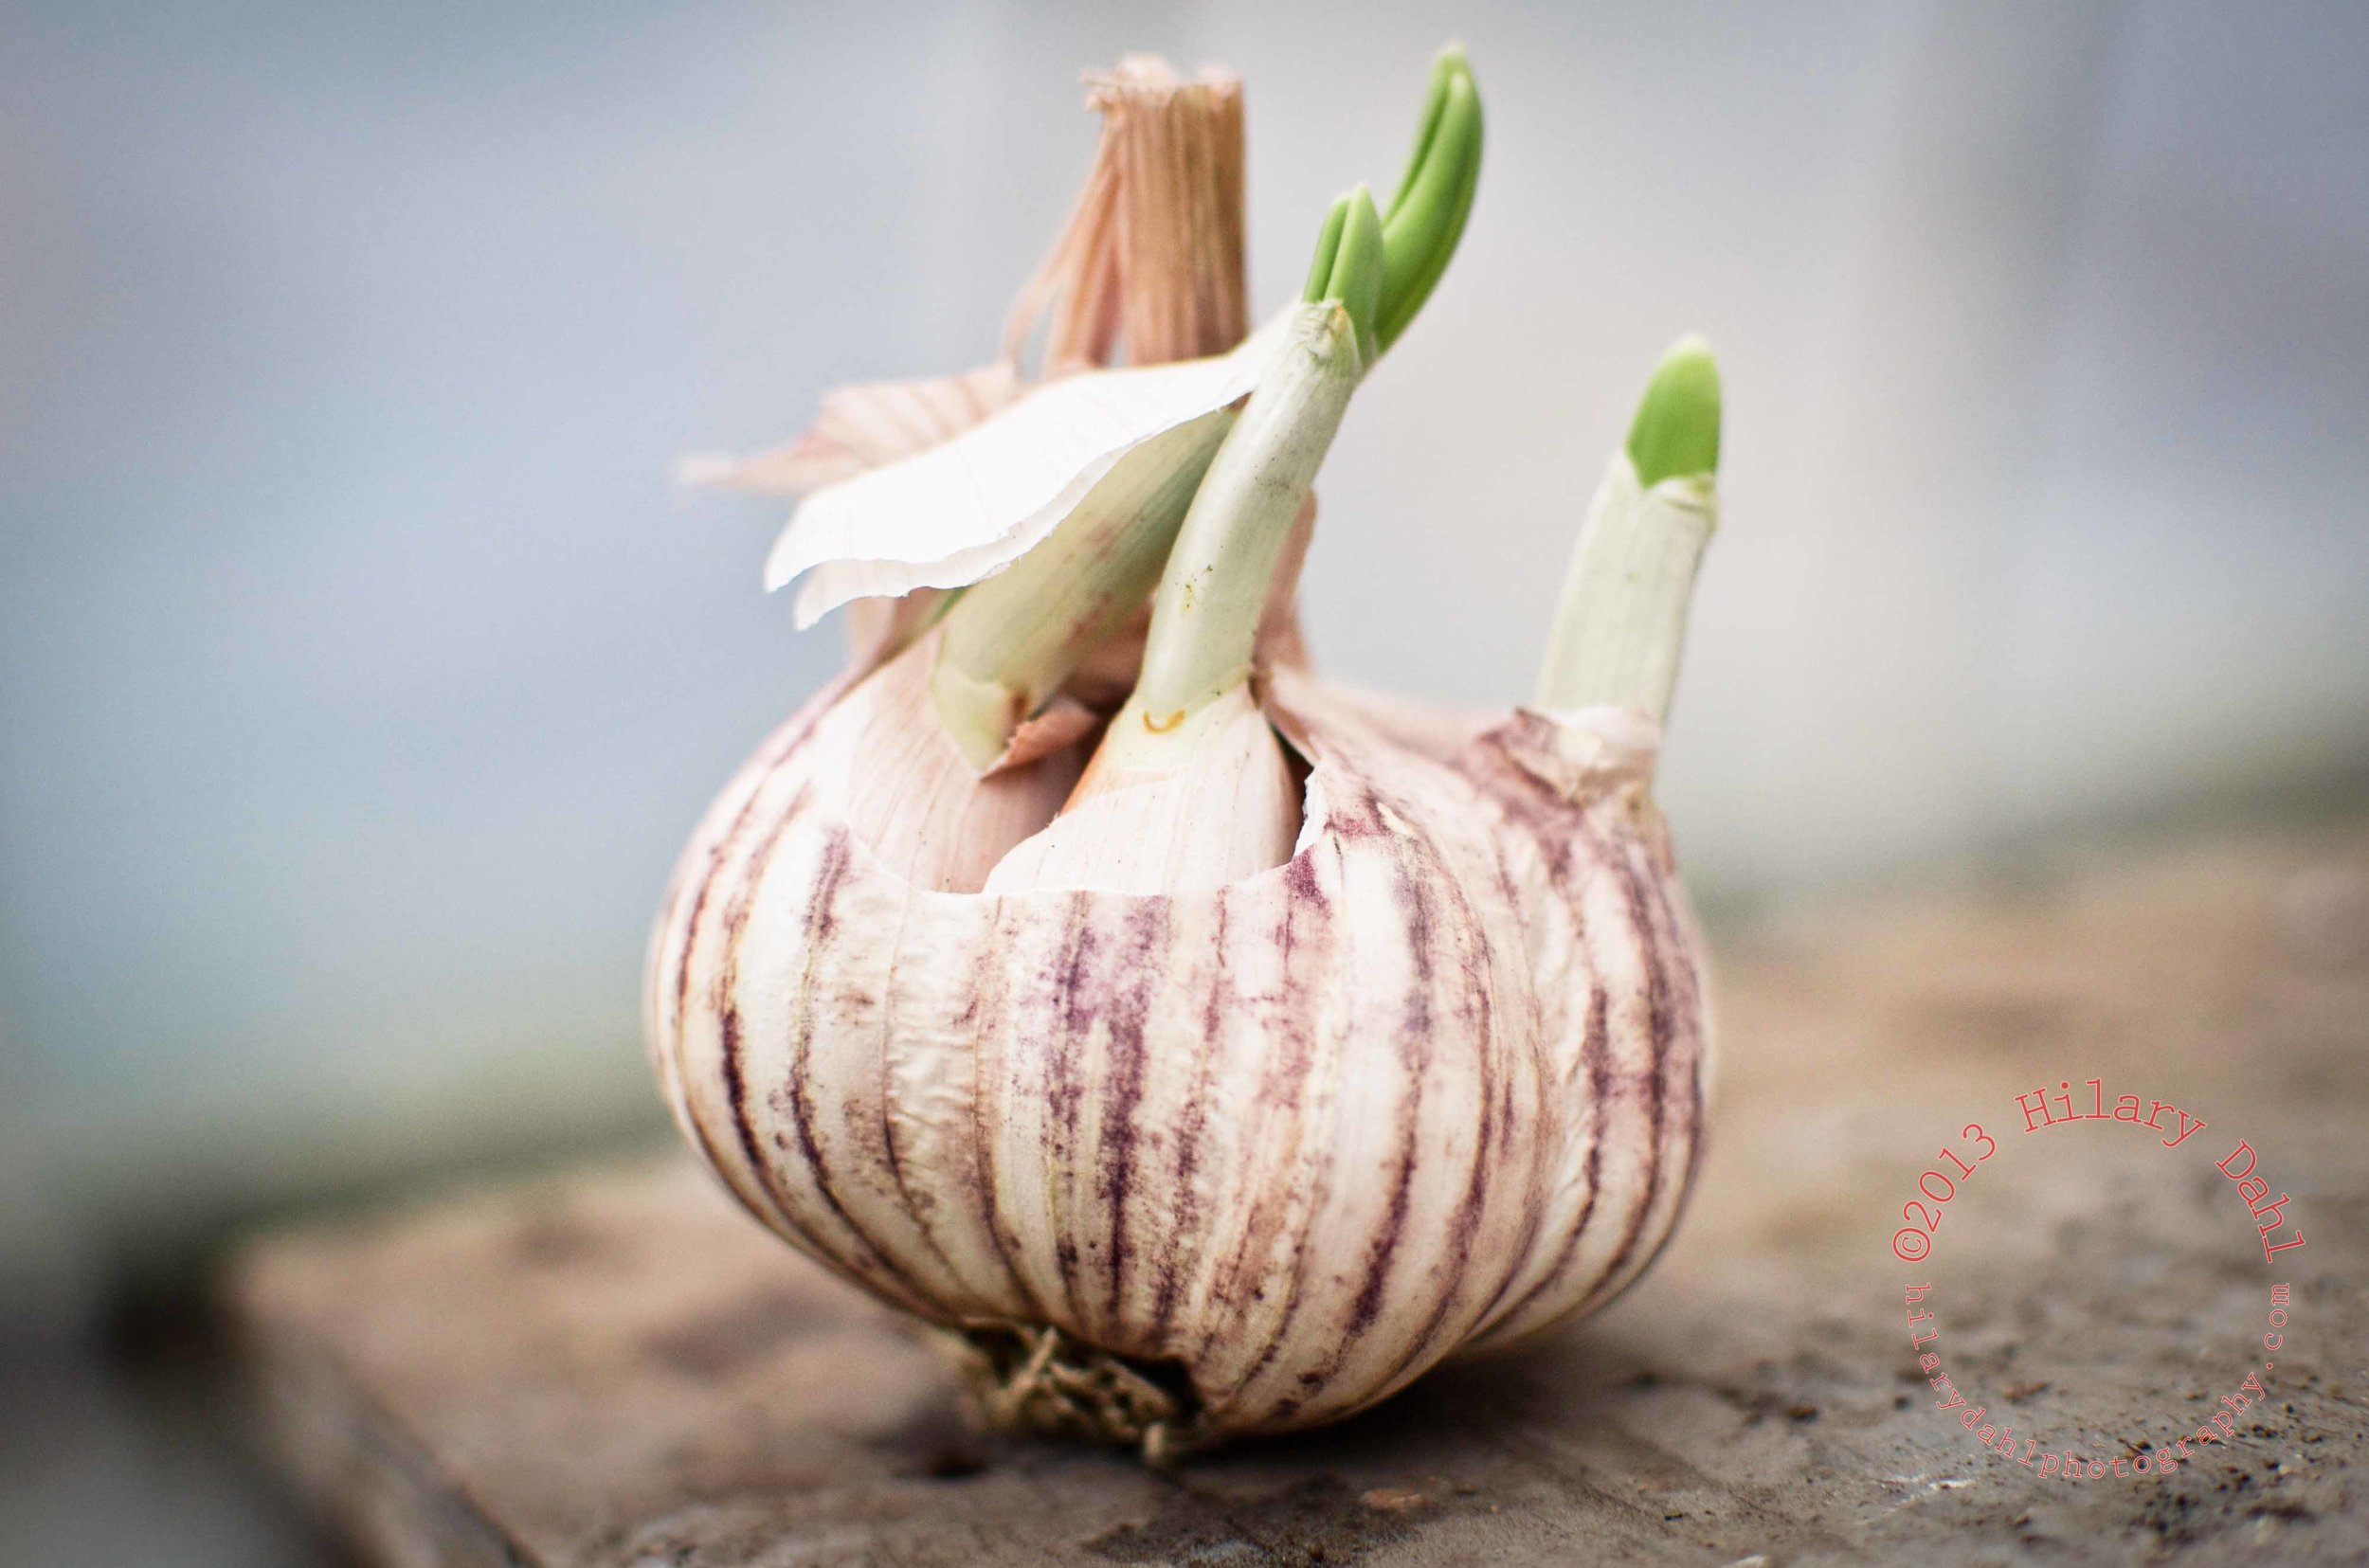 Sprouting garlic, ready to be planted